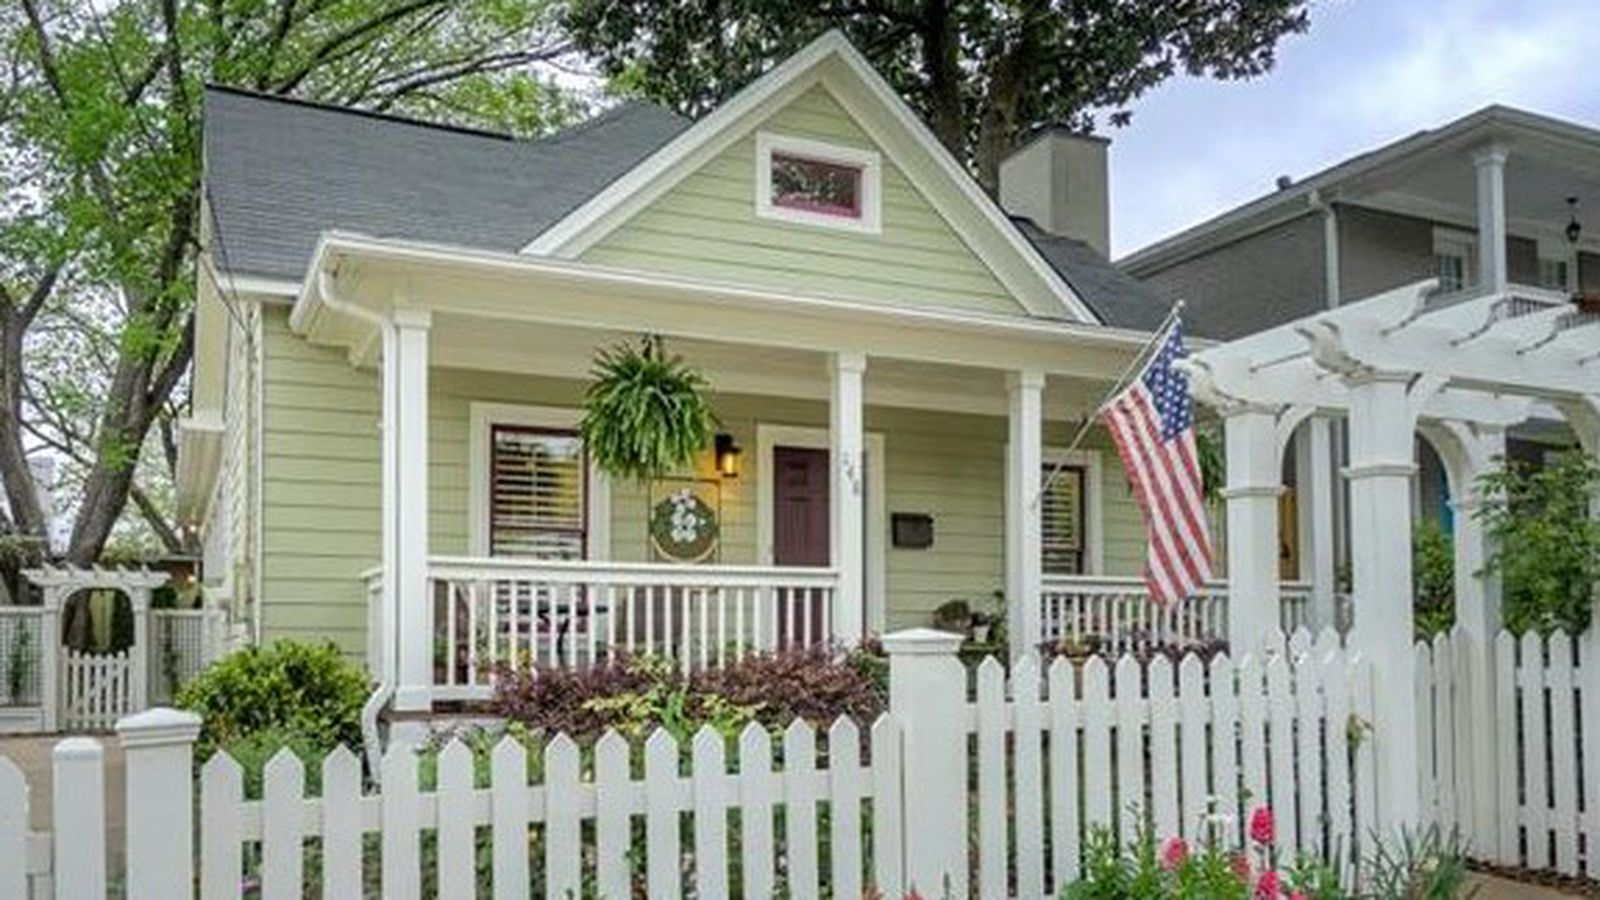 Picturesque Old Fourth Ward Cottage Hopes To Fetch 730K Curbed Atlanta